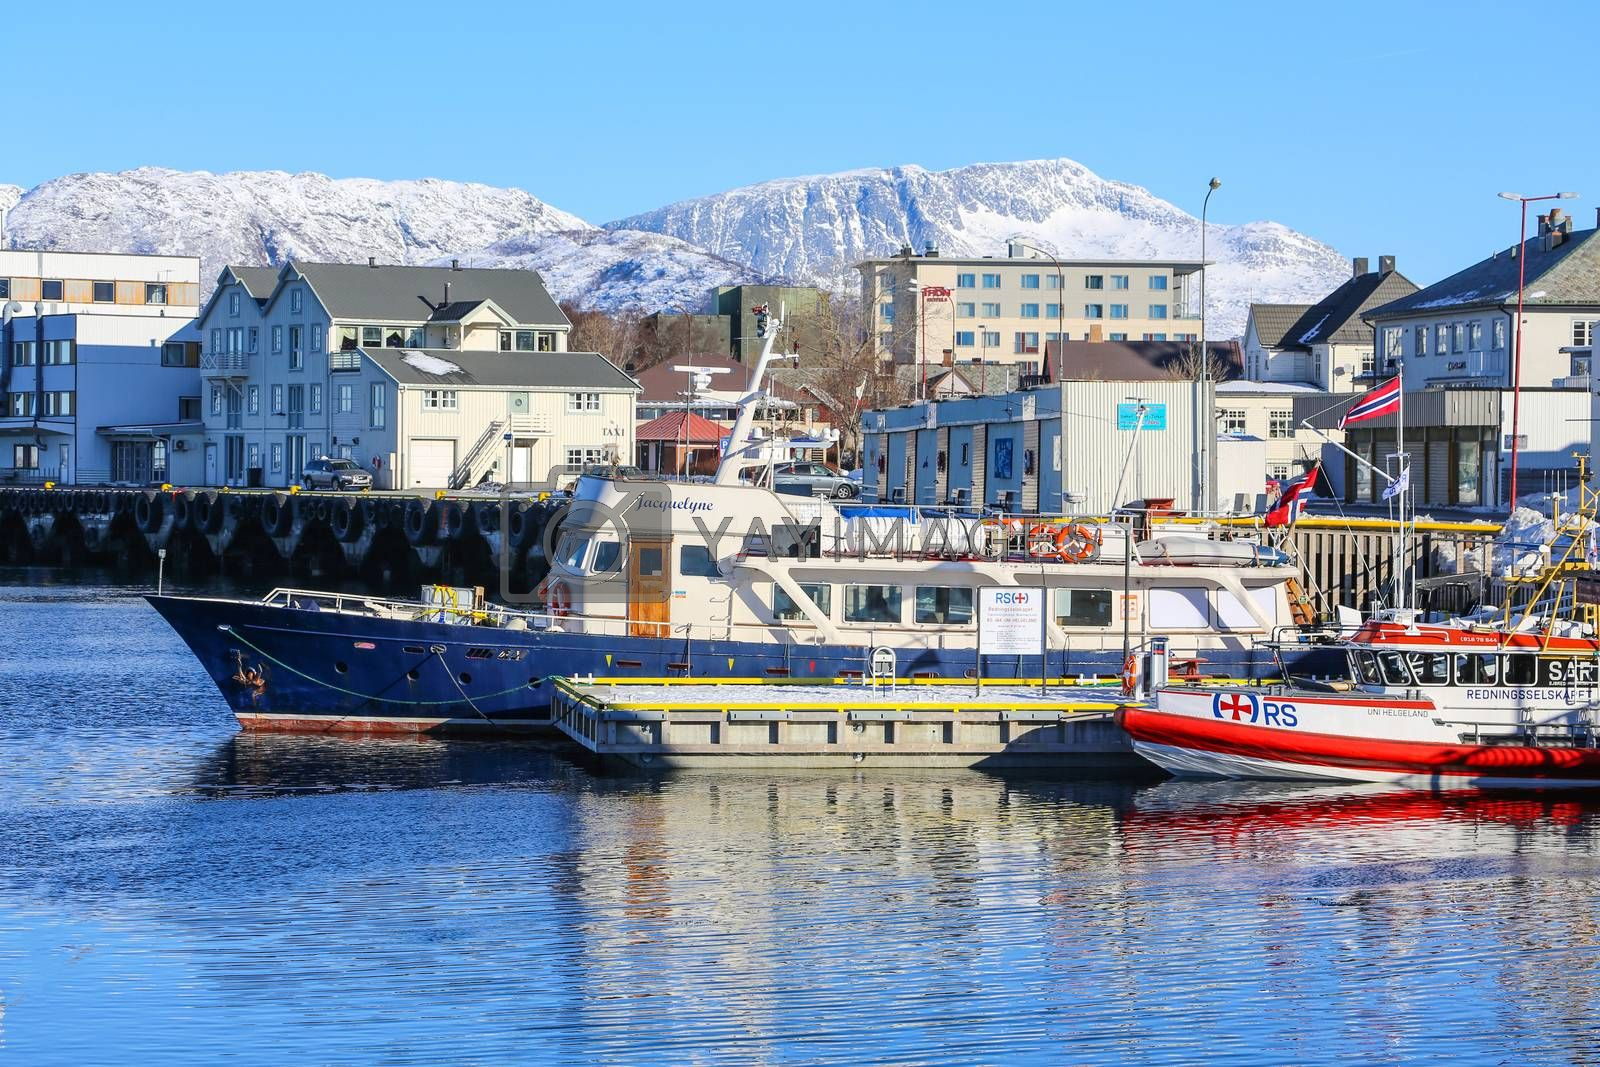 M / V Jacquelyne have the last 3 years been used for whale watching and charter for groups from 15 to 50 guests in Northern Norway, based  M/V Jacquelyne